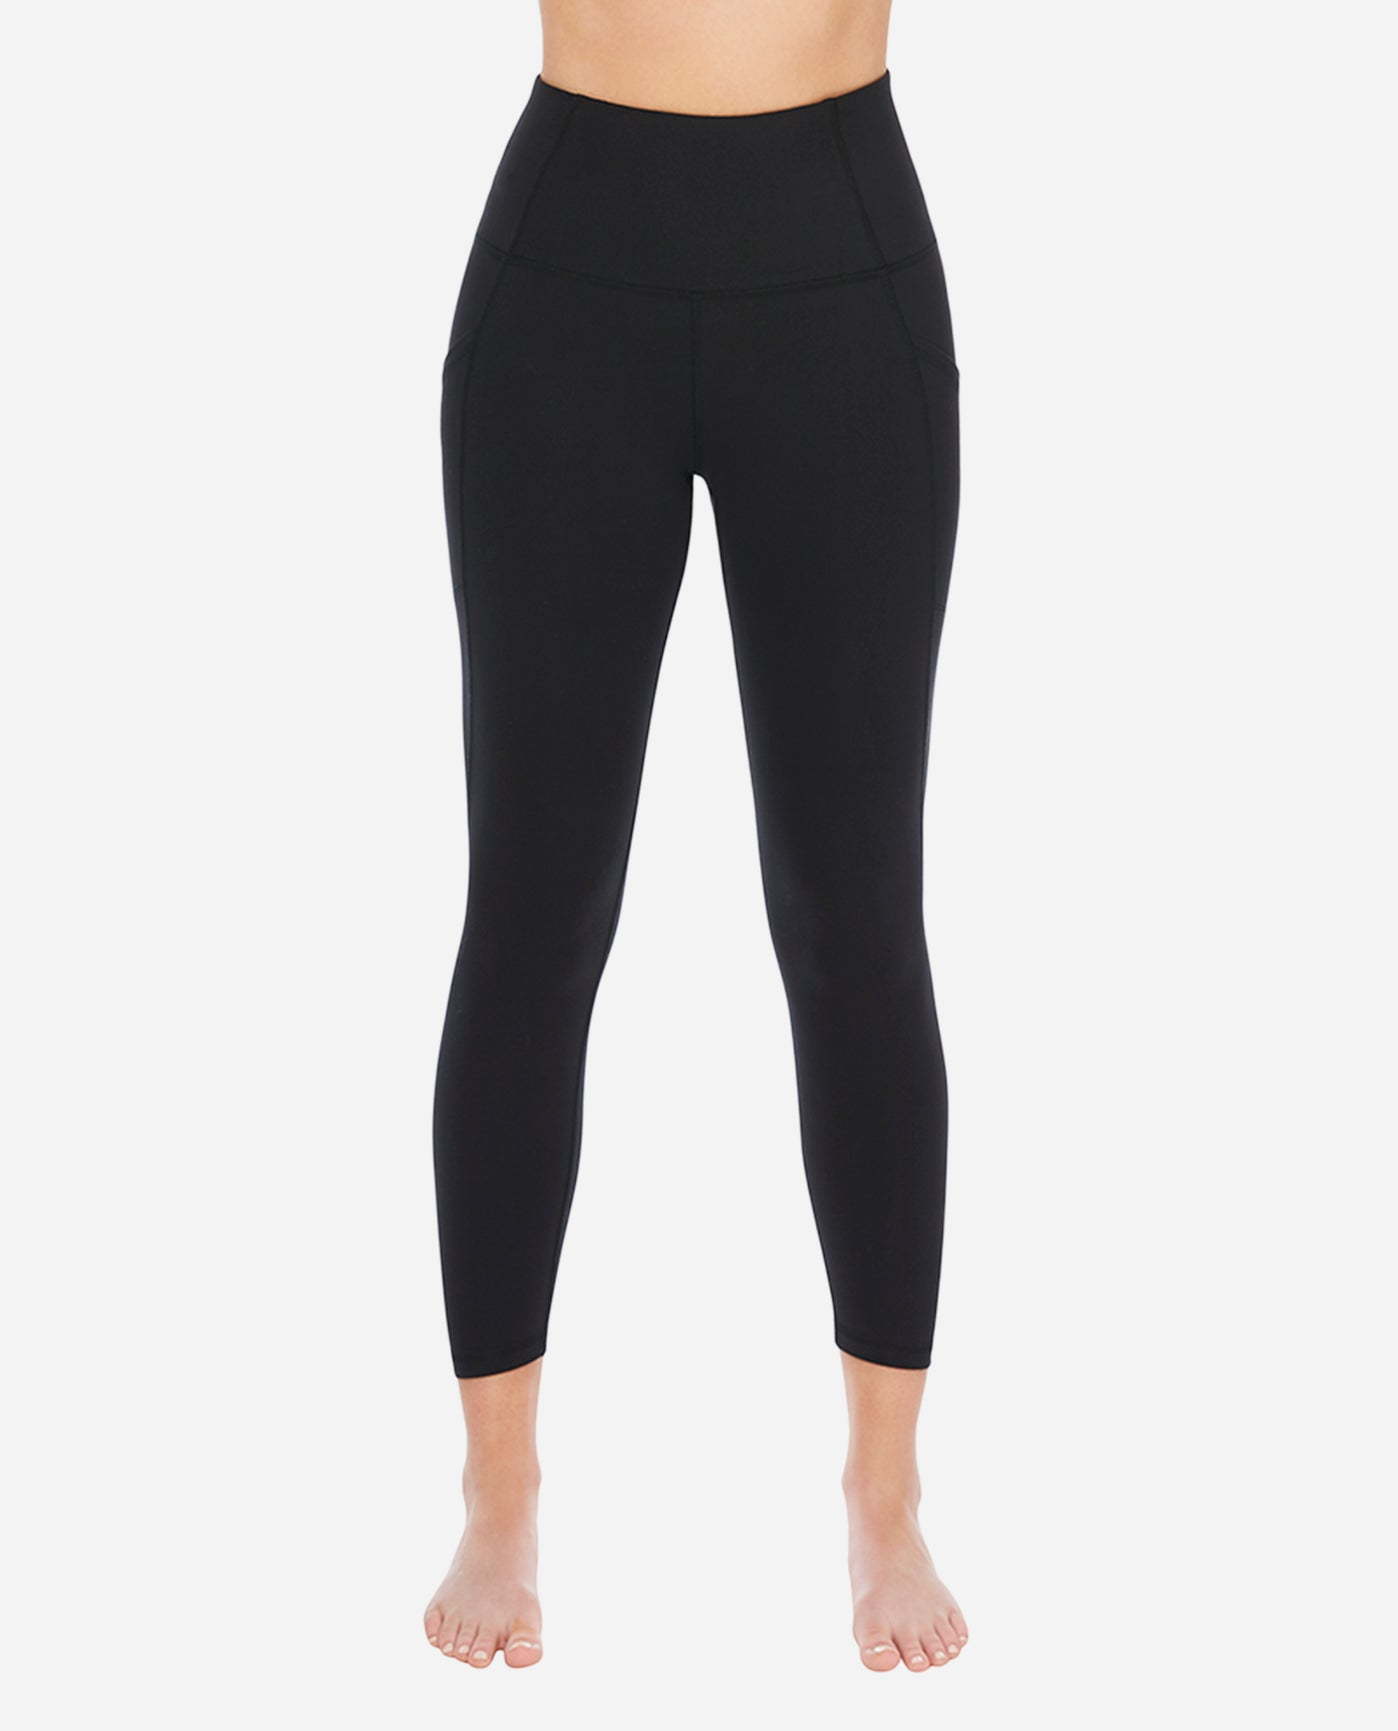 19fbc81ab0c8d 7/8 Compression Legging